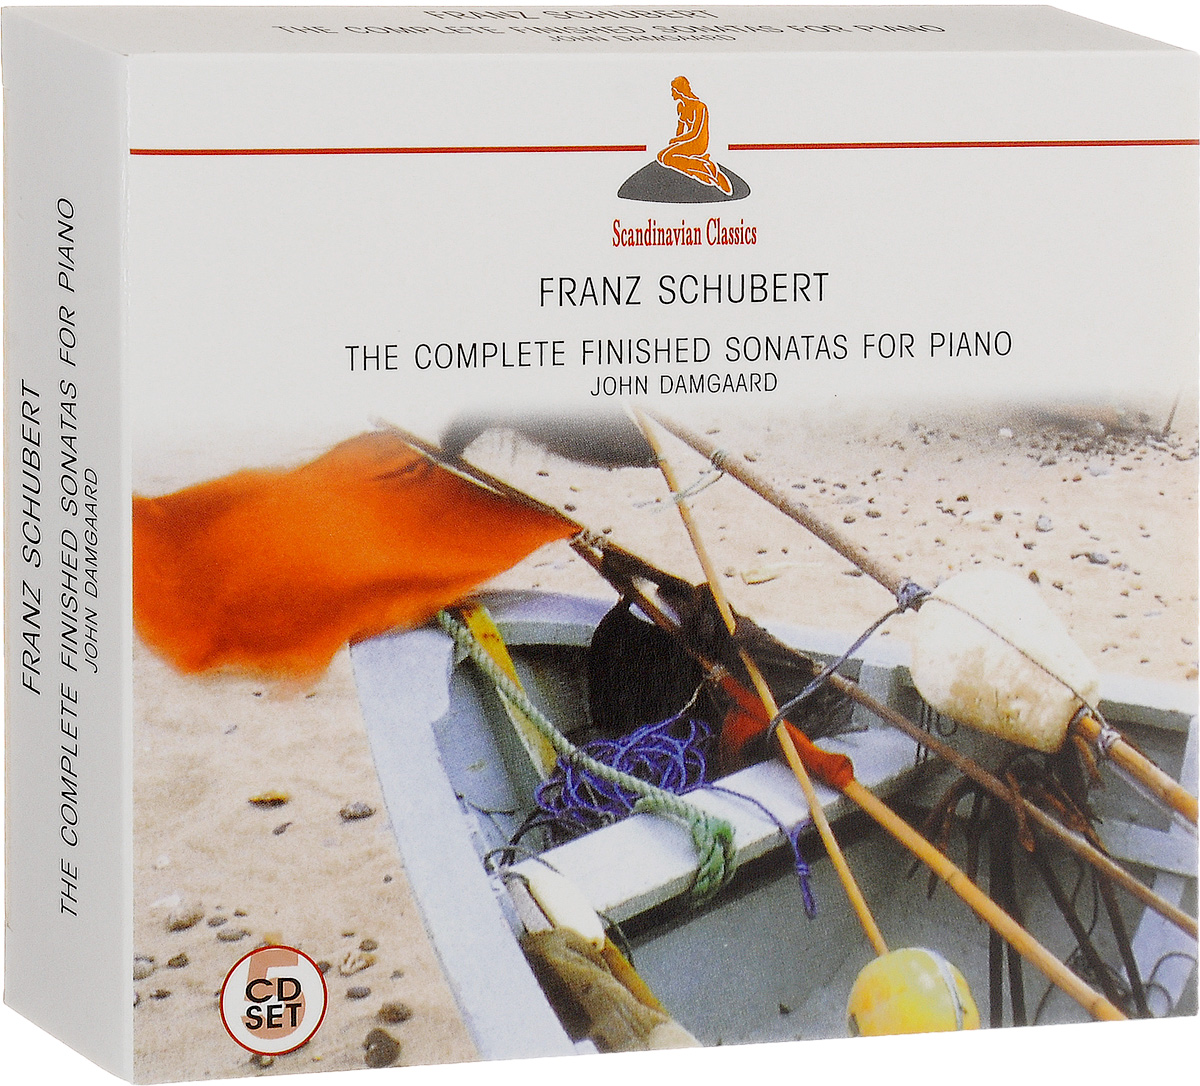 John Damgaard Scandinavian Classics. John Damgaard. Franz Schubert. The Complete Sonatas For Piano (5 CD) kafka franz the castle